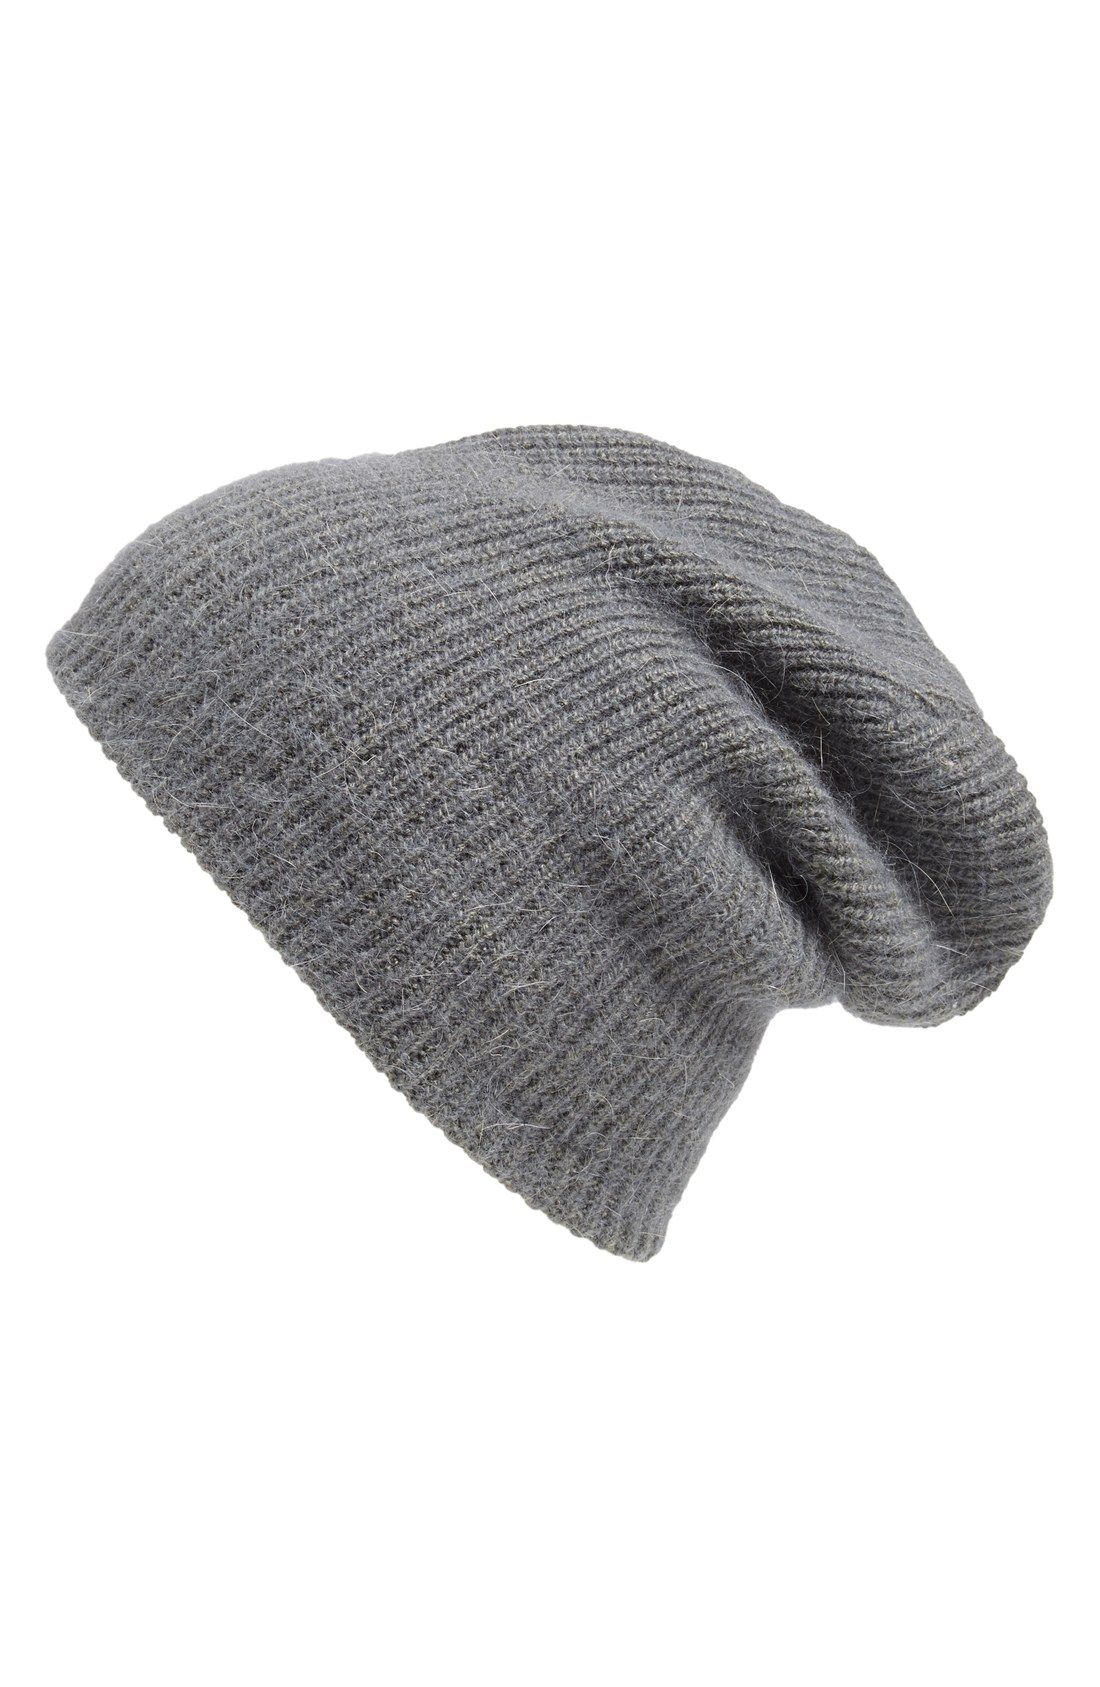 a36234e63bc Free People Knit Beanie